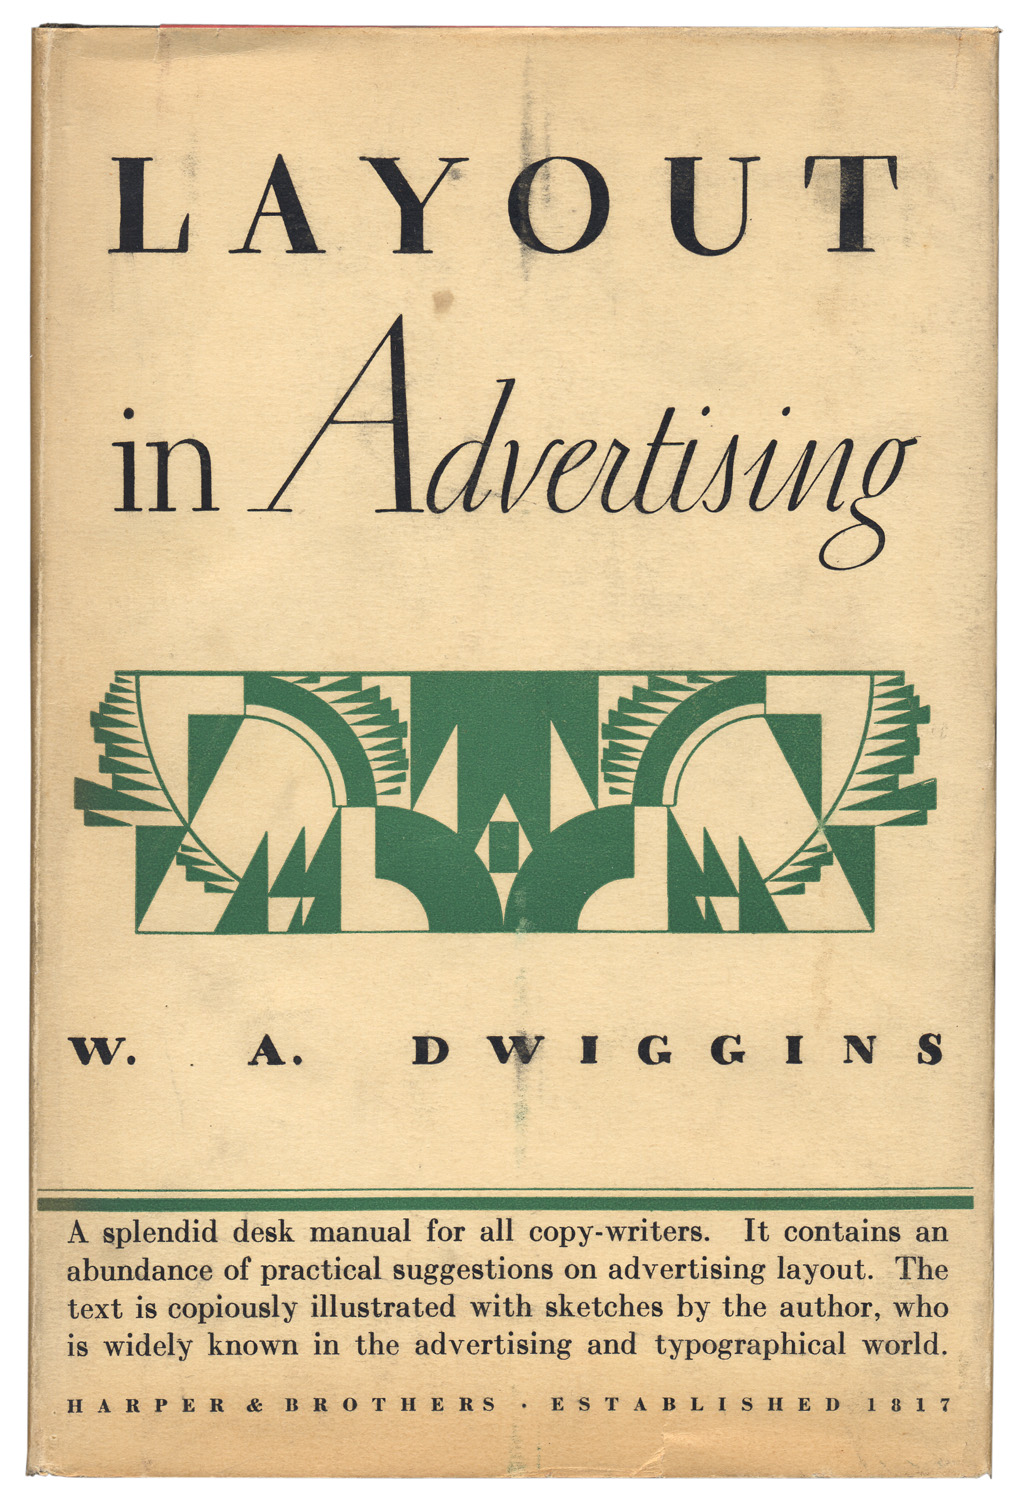 Layout in Advertising by W.A. Dwiggins (New York: Harper & Brothers, 1928). Jacket design by Dwiggins.